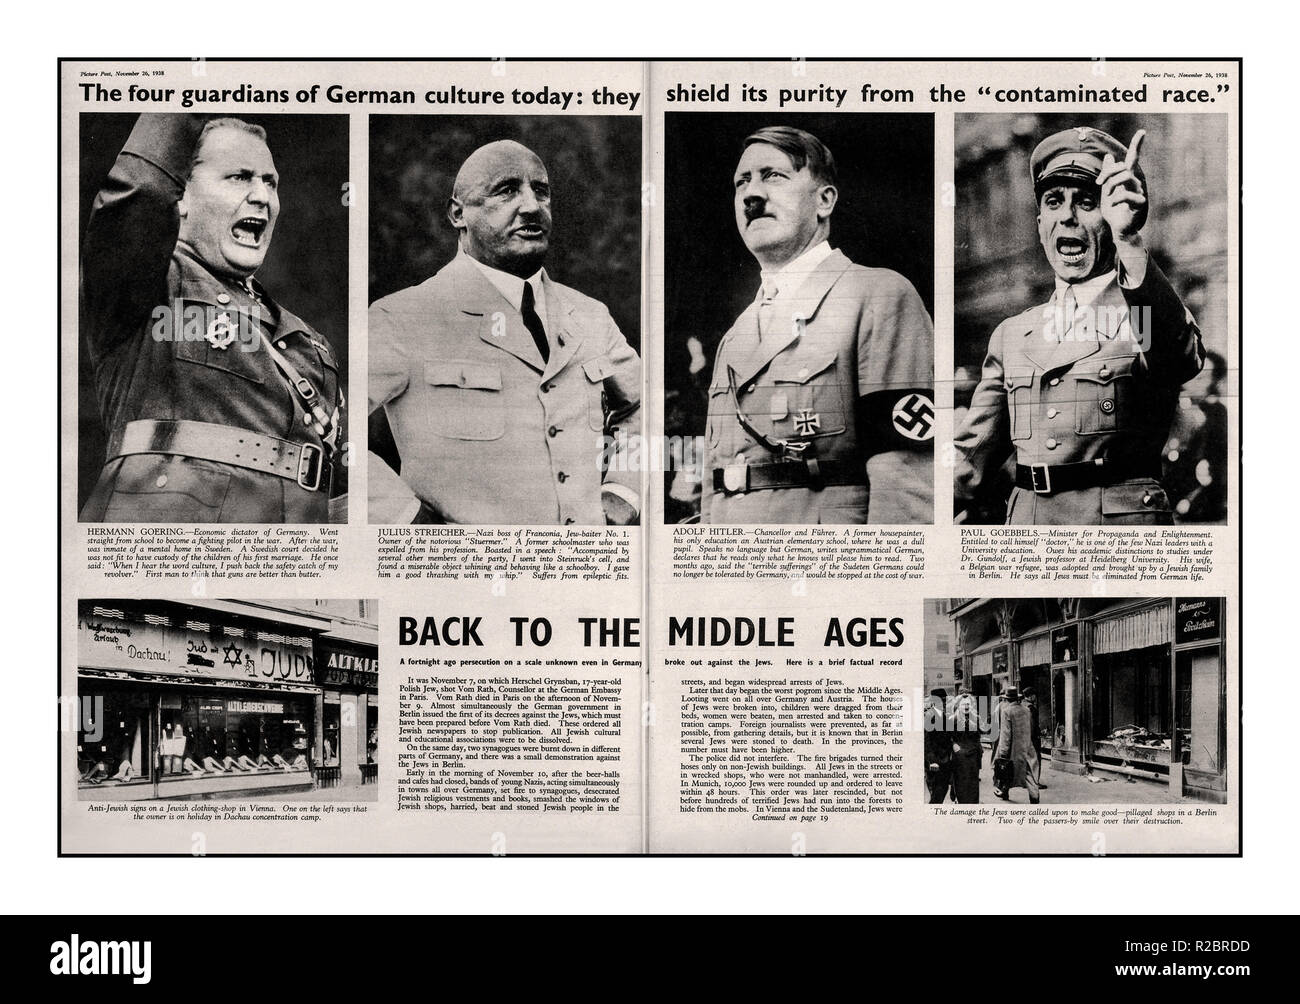 NAZI PERSECUTION PRE- WAR NEWS ARTICLE 1938.. Illustrated Newspaper article on German Culture and the Nazi Party. Leading Nazis featured L-R are Hermann Goering, Julius Streicher, Adolf Hitler and Paul Goebbels. Pre WW2 World War WW2 II article highlighting the increasing violent anti-semitic persecution of German Jews by the NSDAP /Nazi Party such as the Kristallnacht pogrom represented by the four leading Nazis featured... 'Picture Post' Great Britain Nov 26th 1938 - Stock Image